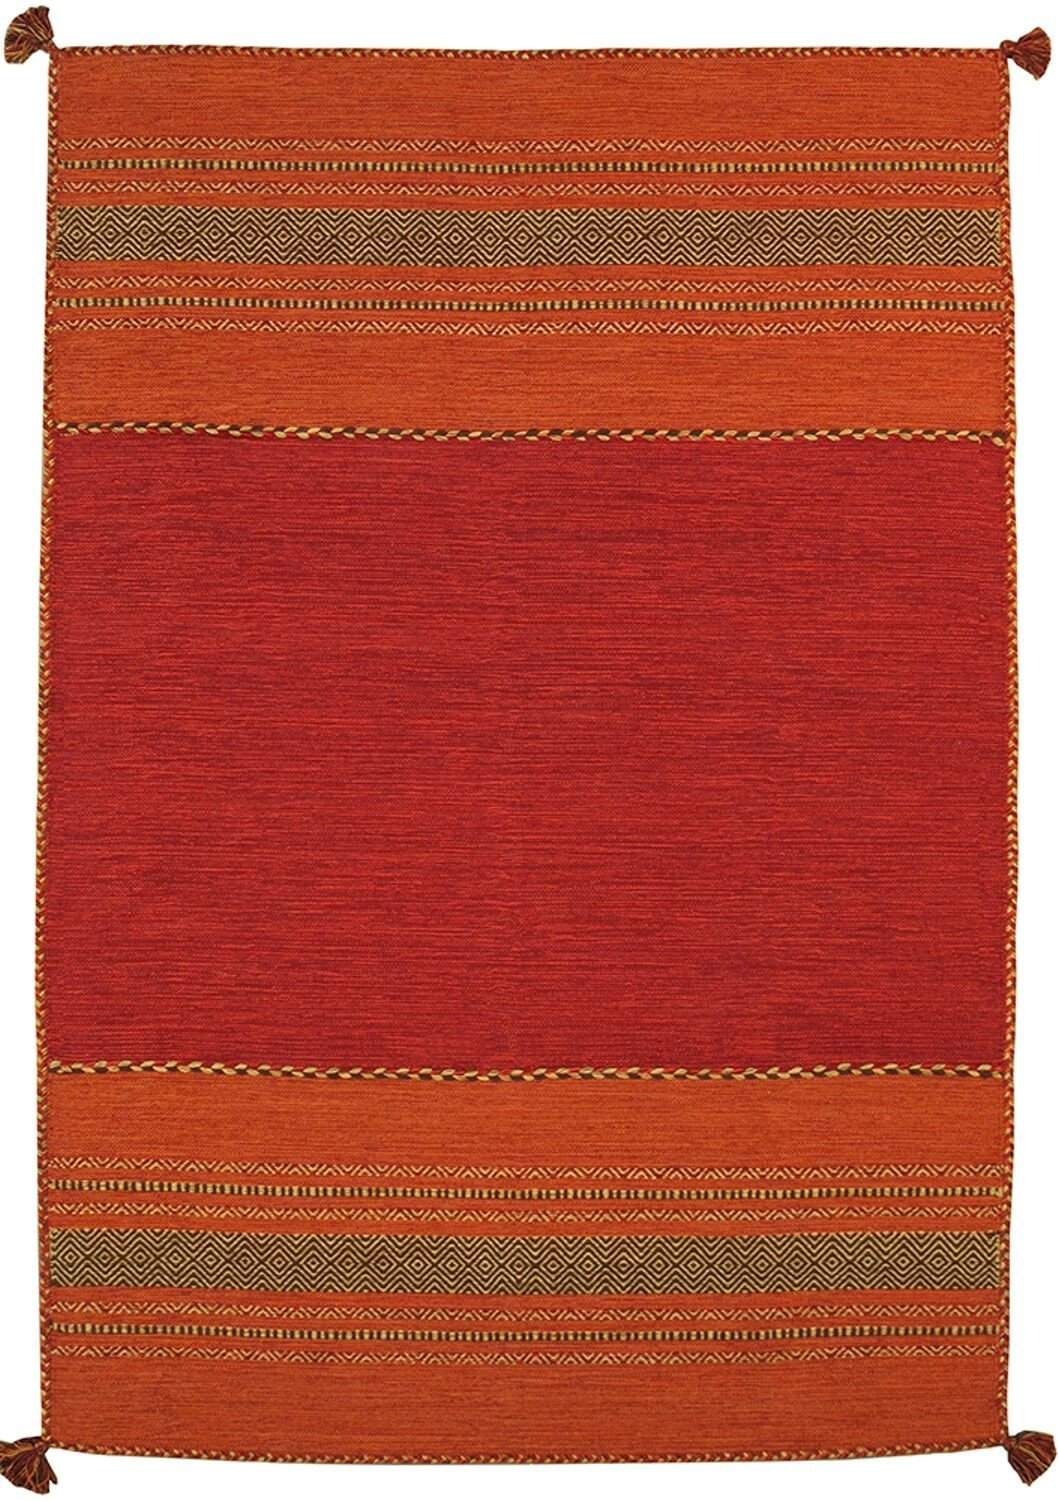 Hand-Woven Kilim Cotton Area Rugs